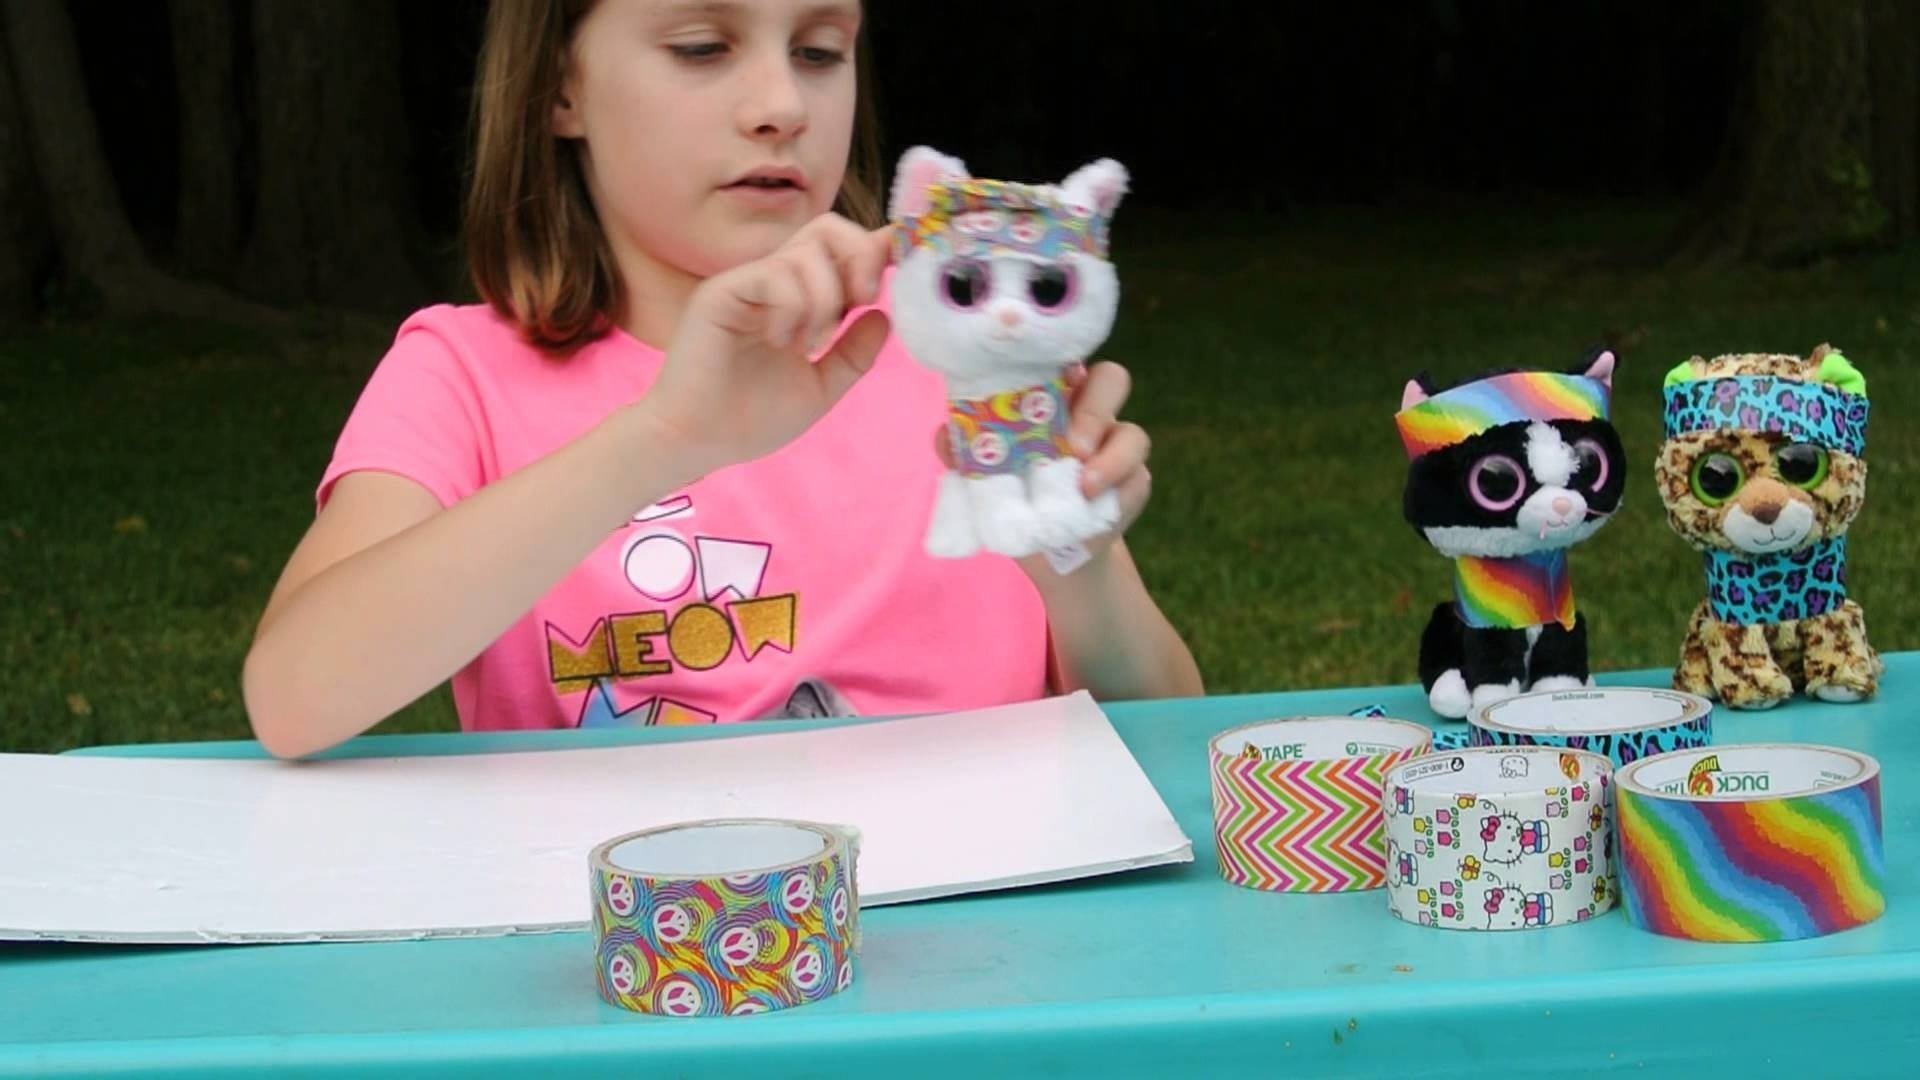 10 Attractive Duct Tape Ideas For Girls more cool and easy duct tape crafts youtube 2020